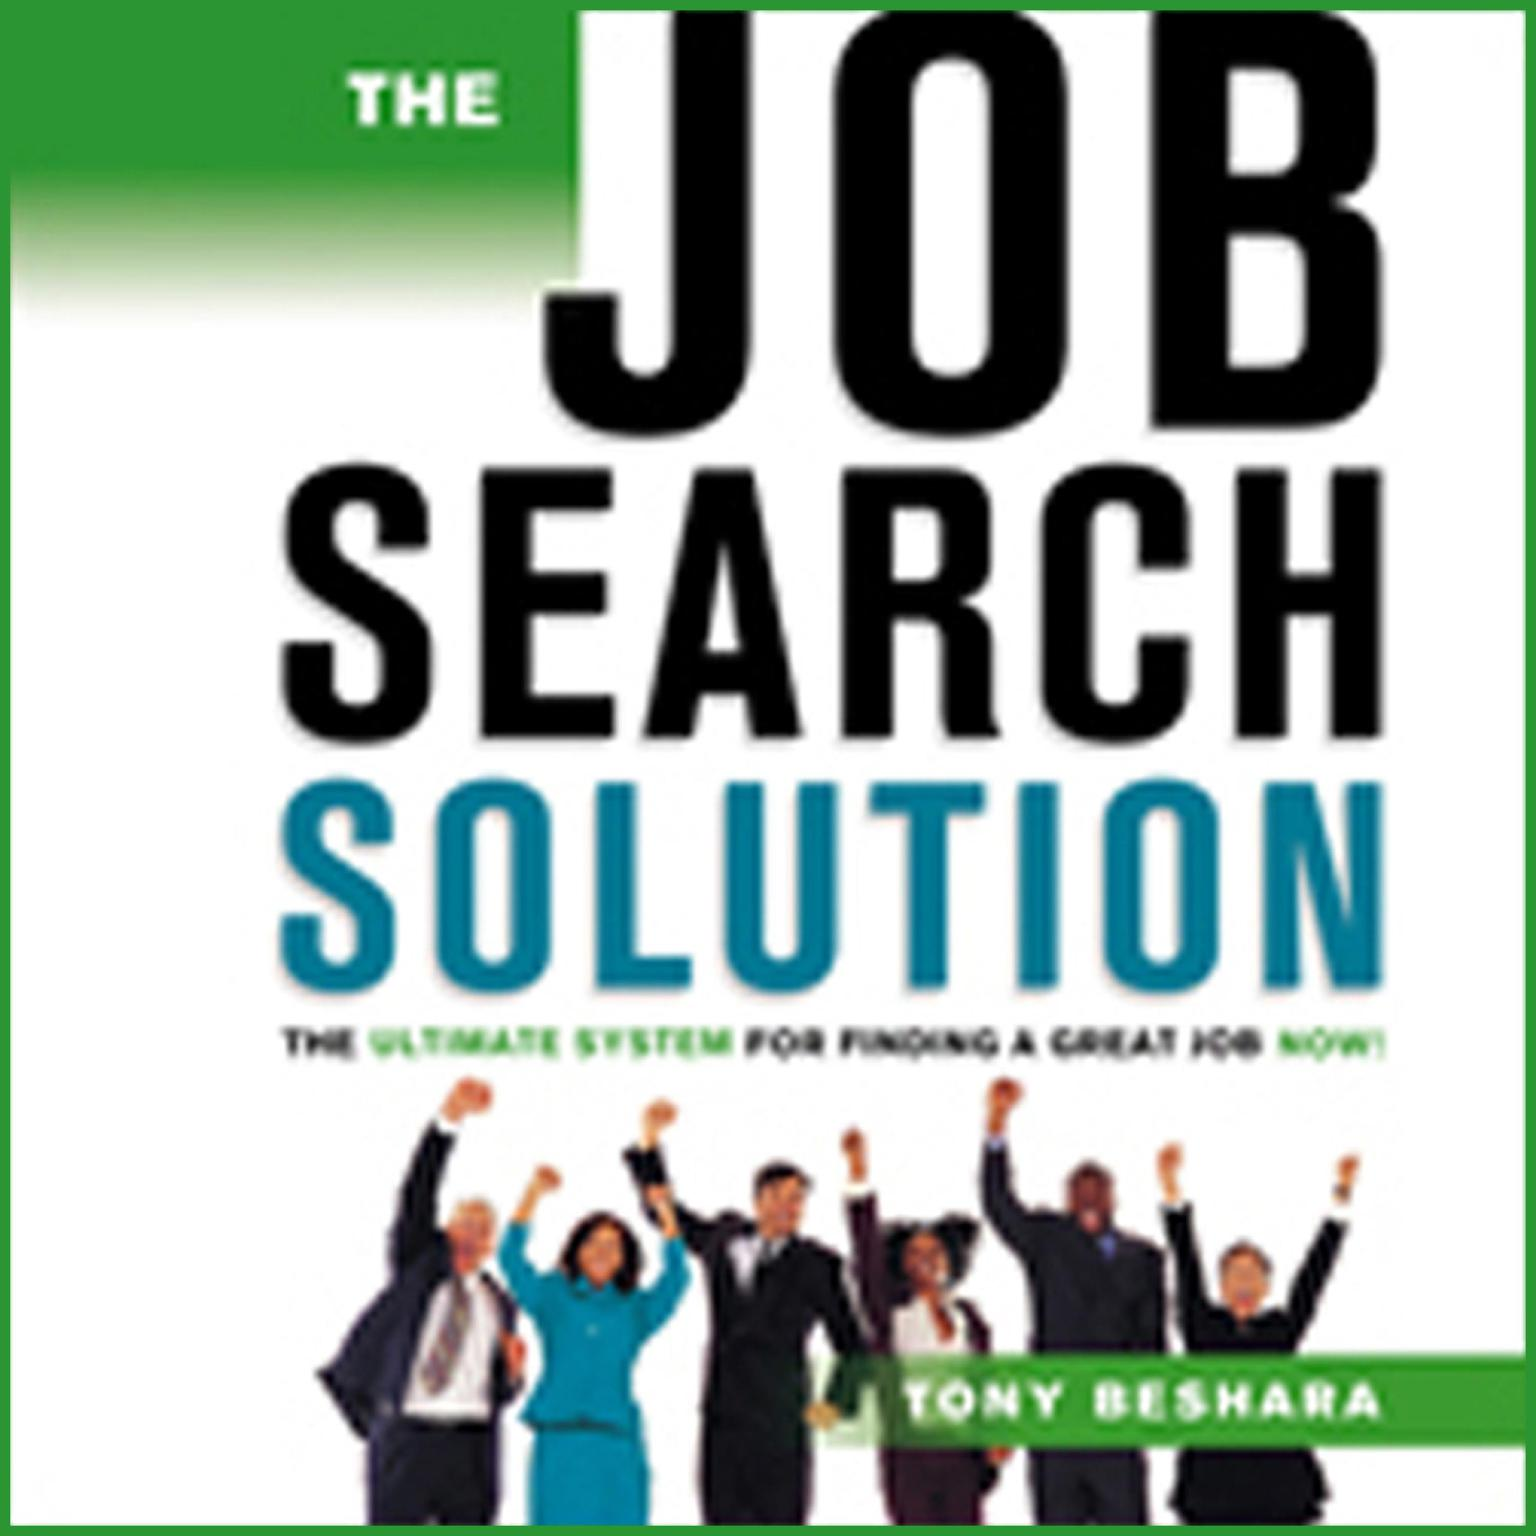 Printable The Job Search Solution:: The Ultimate System for Finding a Great Job Now! Audiobook Cover Art